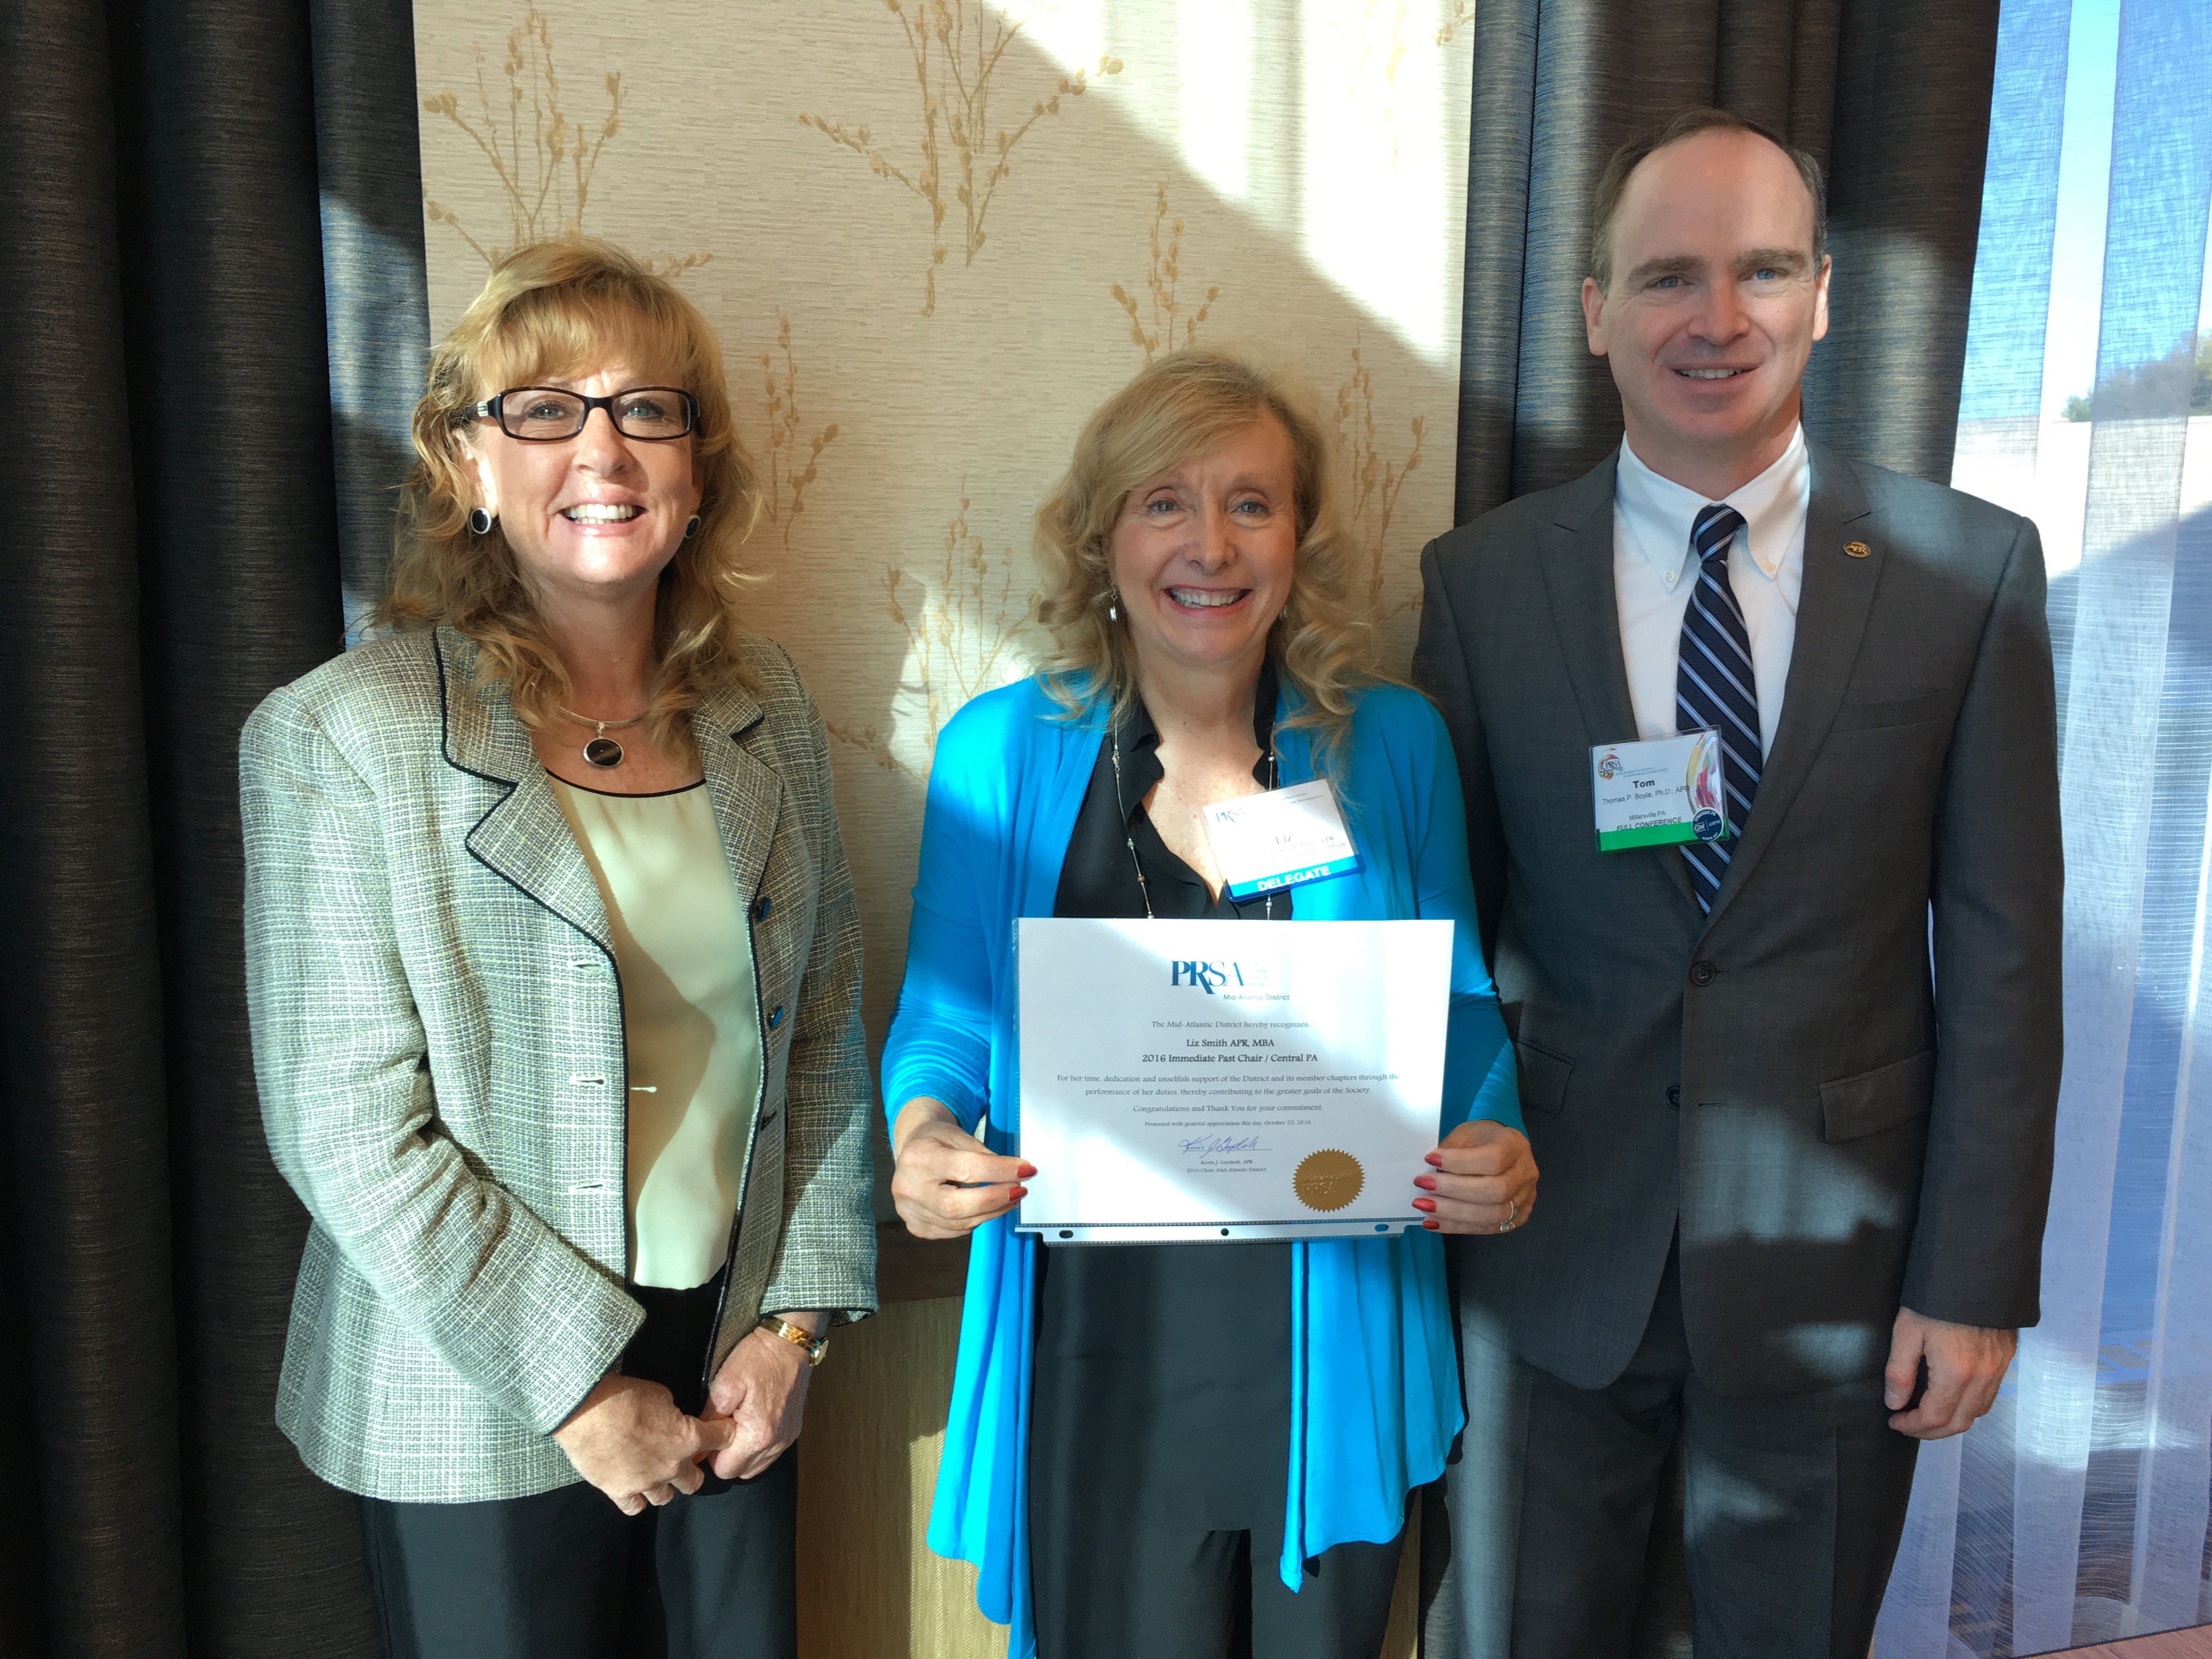 liz-smith-apr-recognized-for-district-leadership